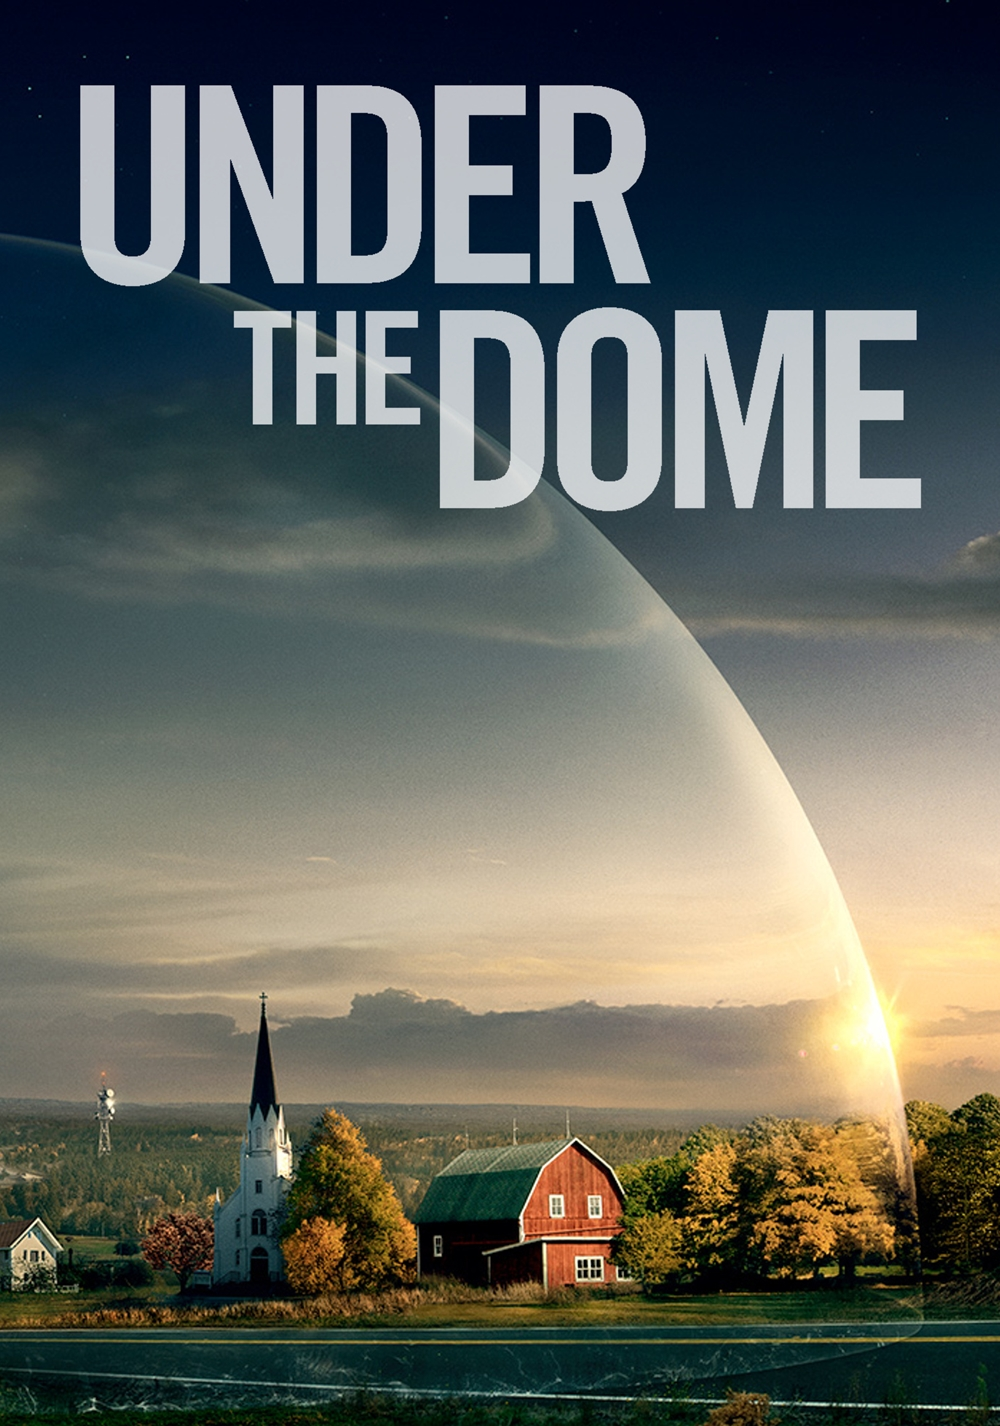 poster-under-the-dome-season-1